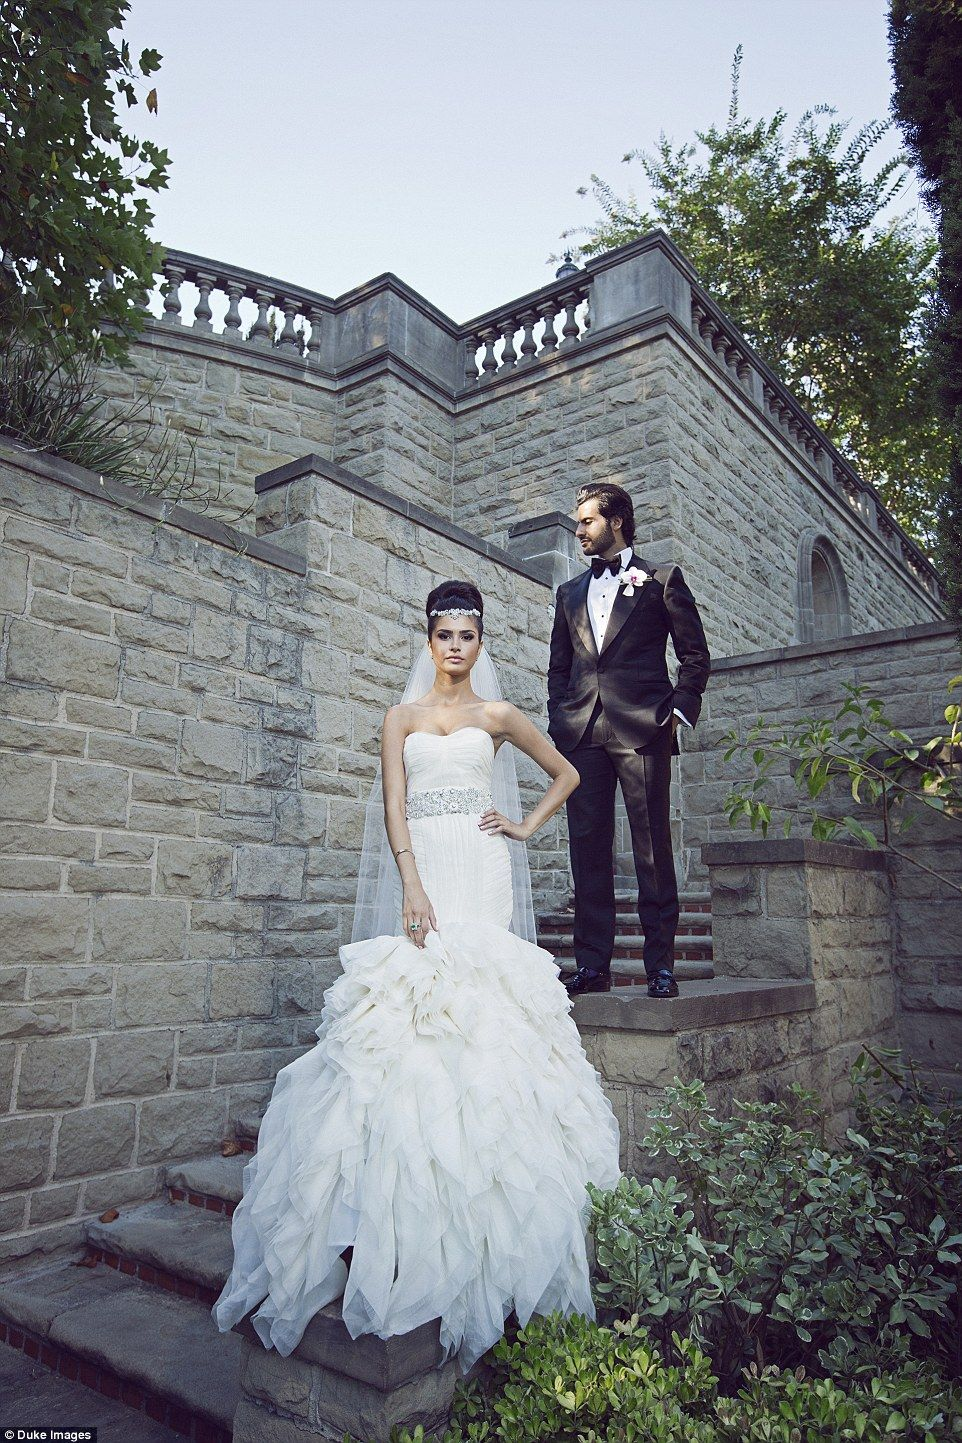 294364F000000578-3106544-For_Nadia_and_Sam_s_Beverly_Hills_wedding_thousands_of_the_bride-a-11_1433711750227